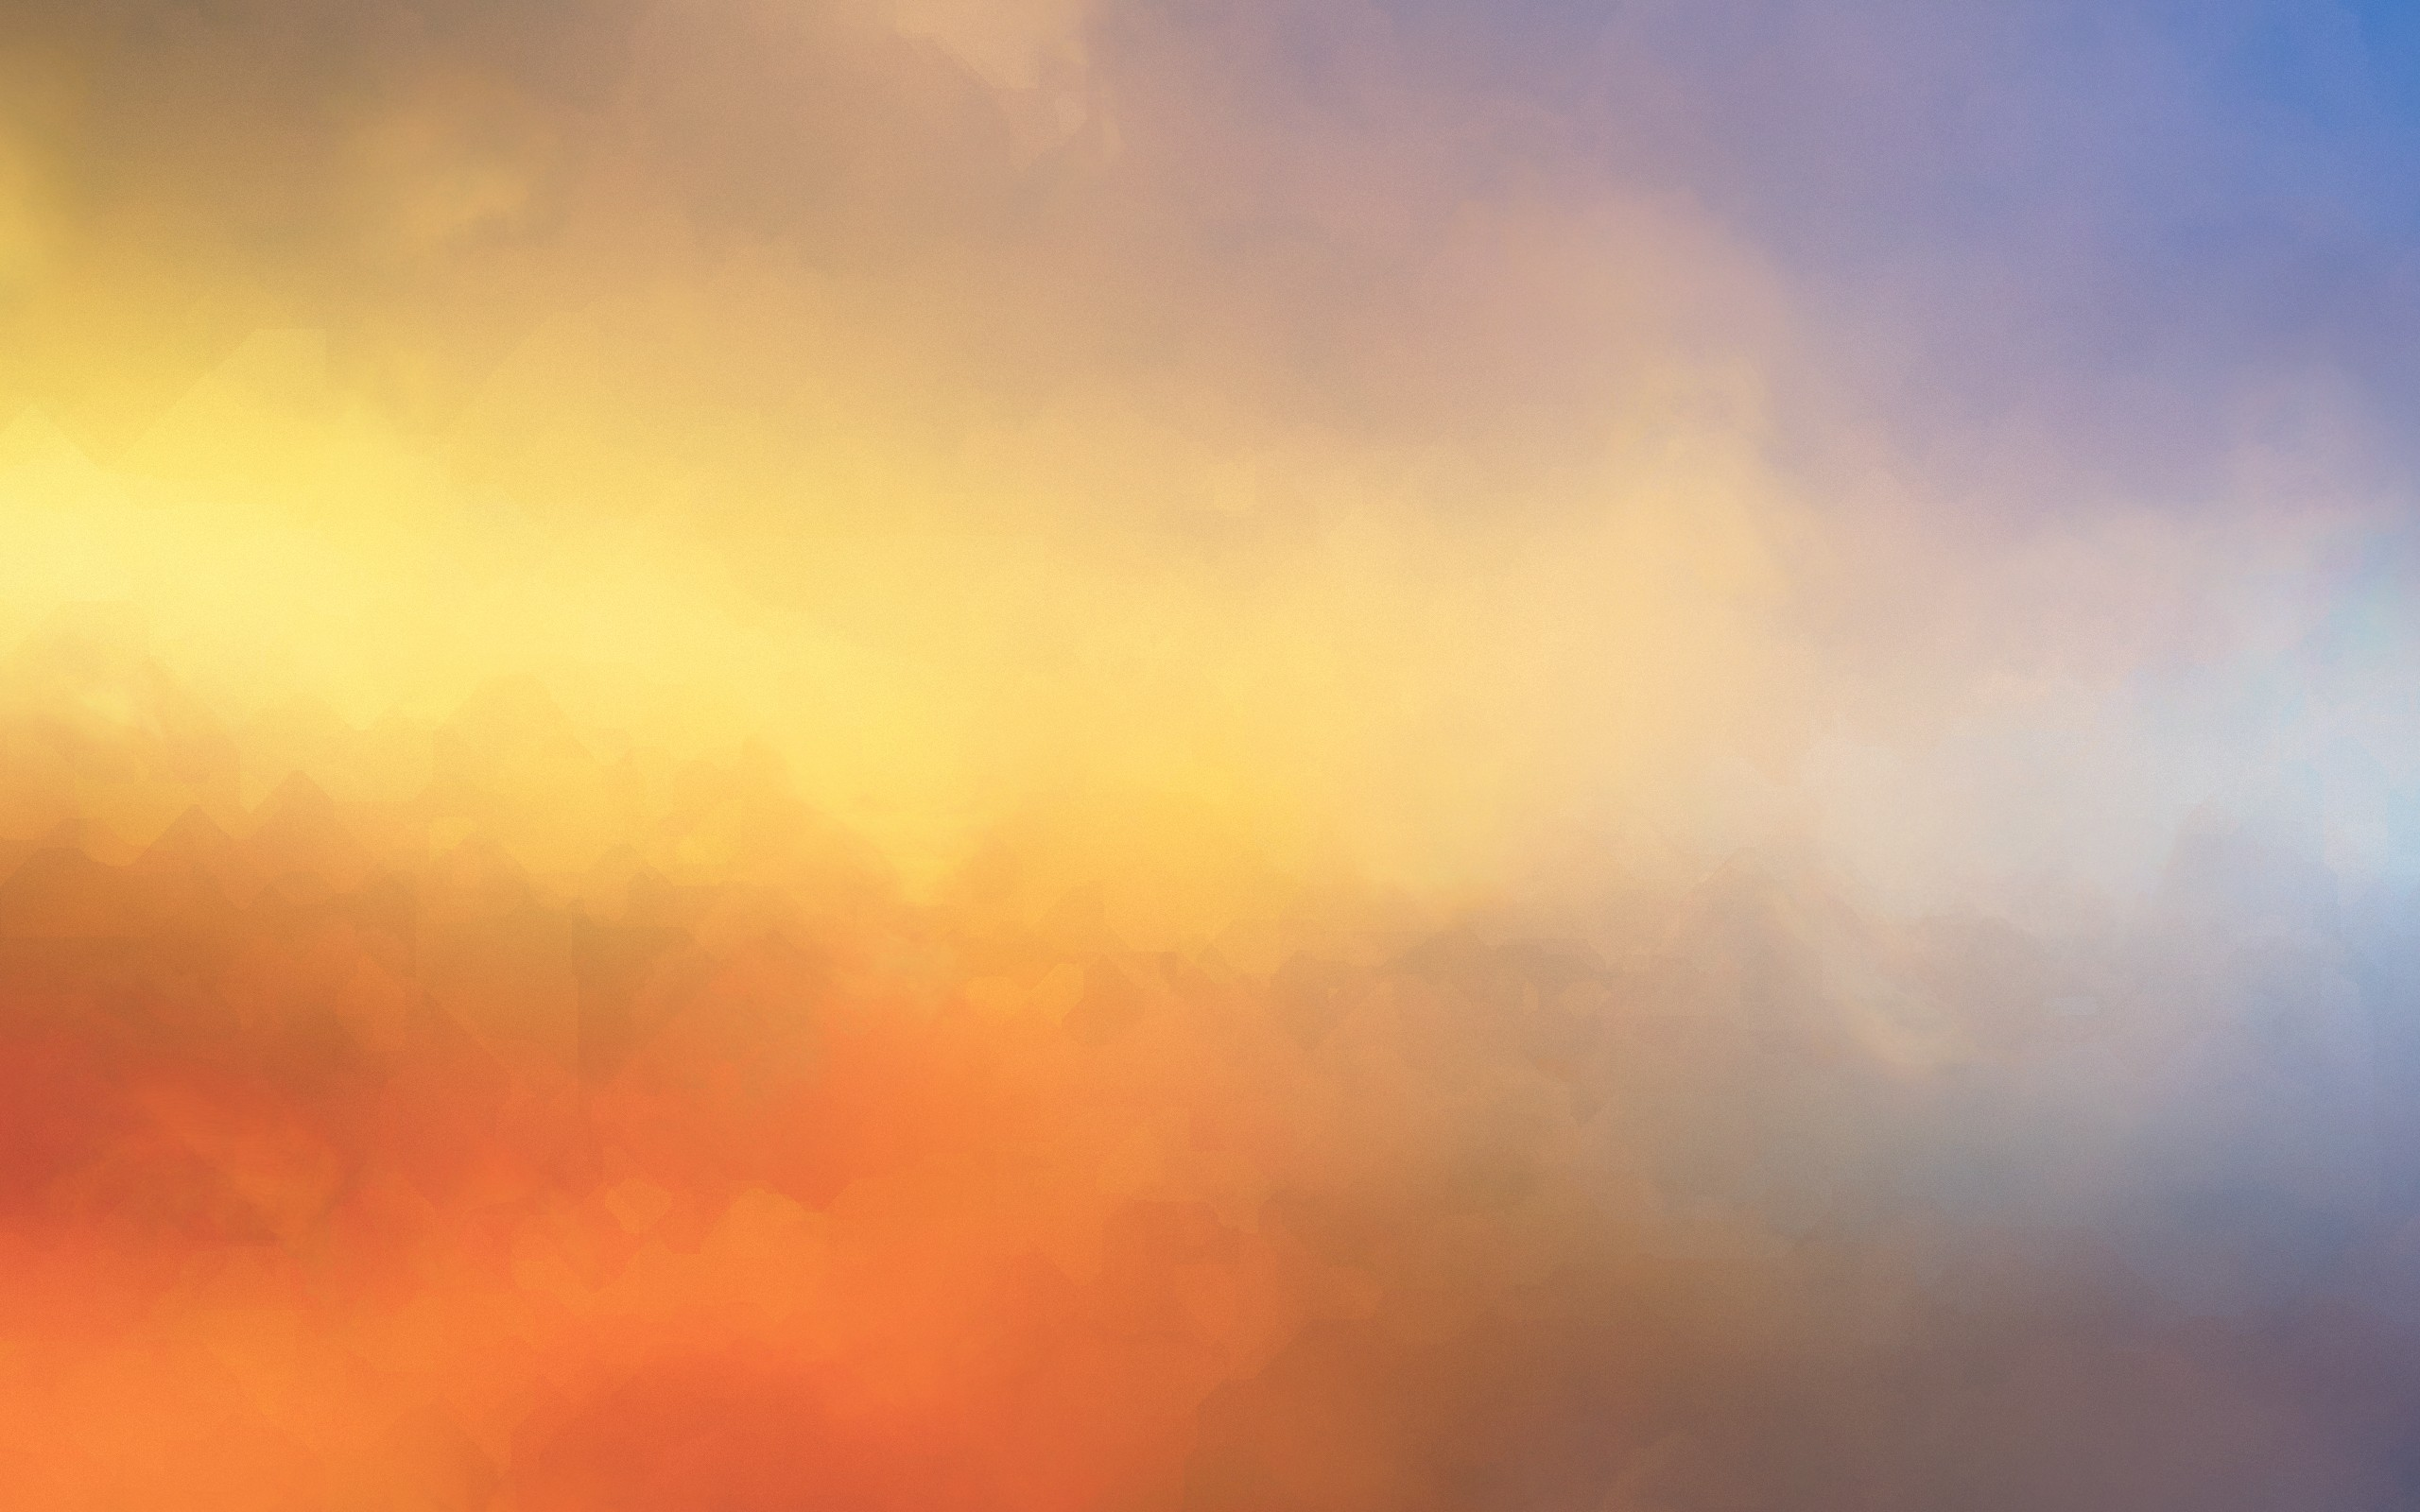 Blurred Colors wallpapers | Blurred Colors stock photos